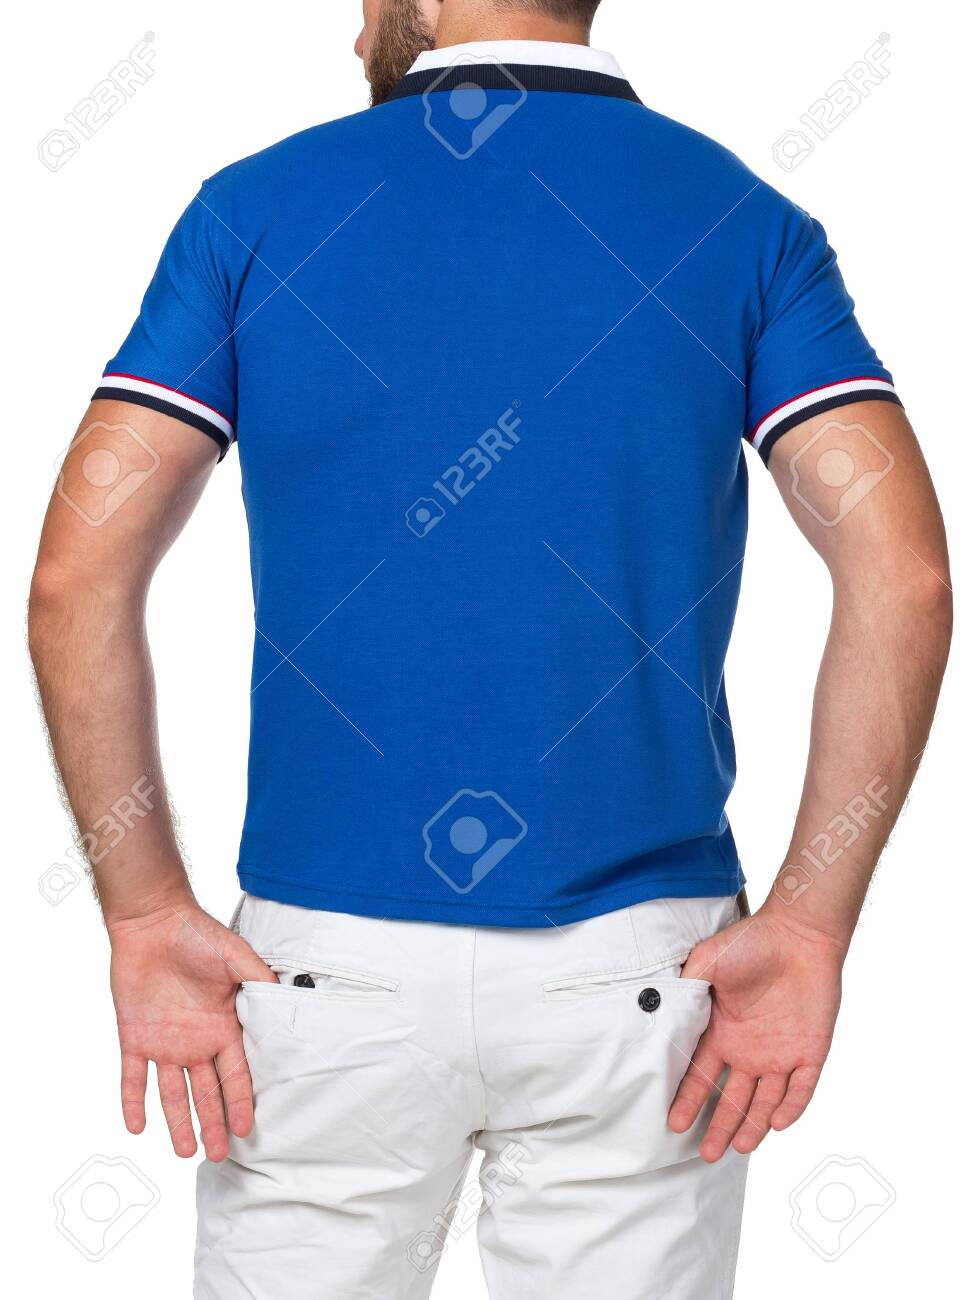 blank color t-shirt on man (back side) isolated on white background - 135106105